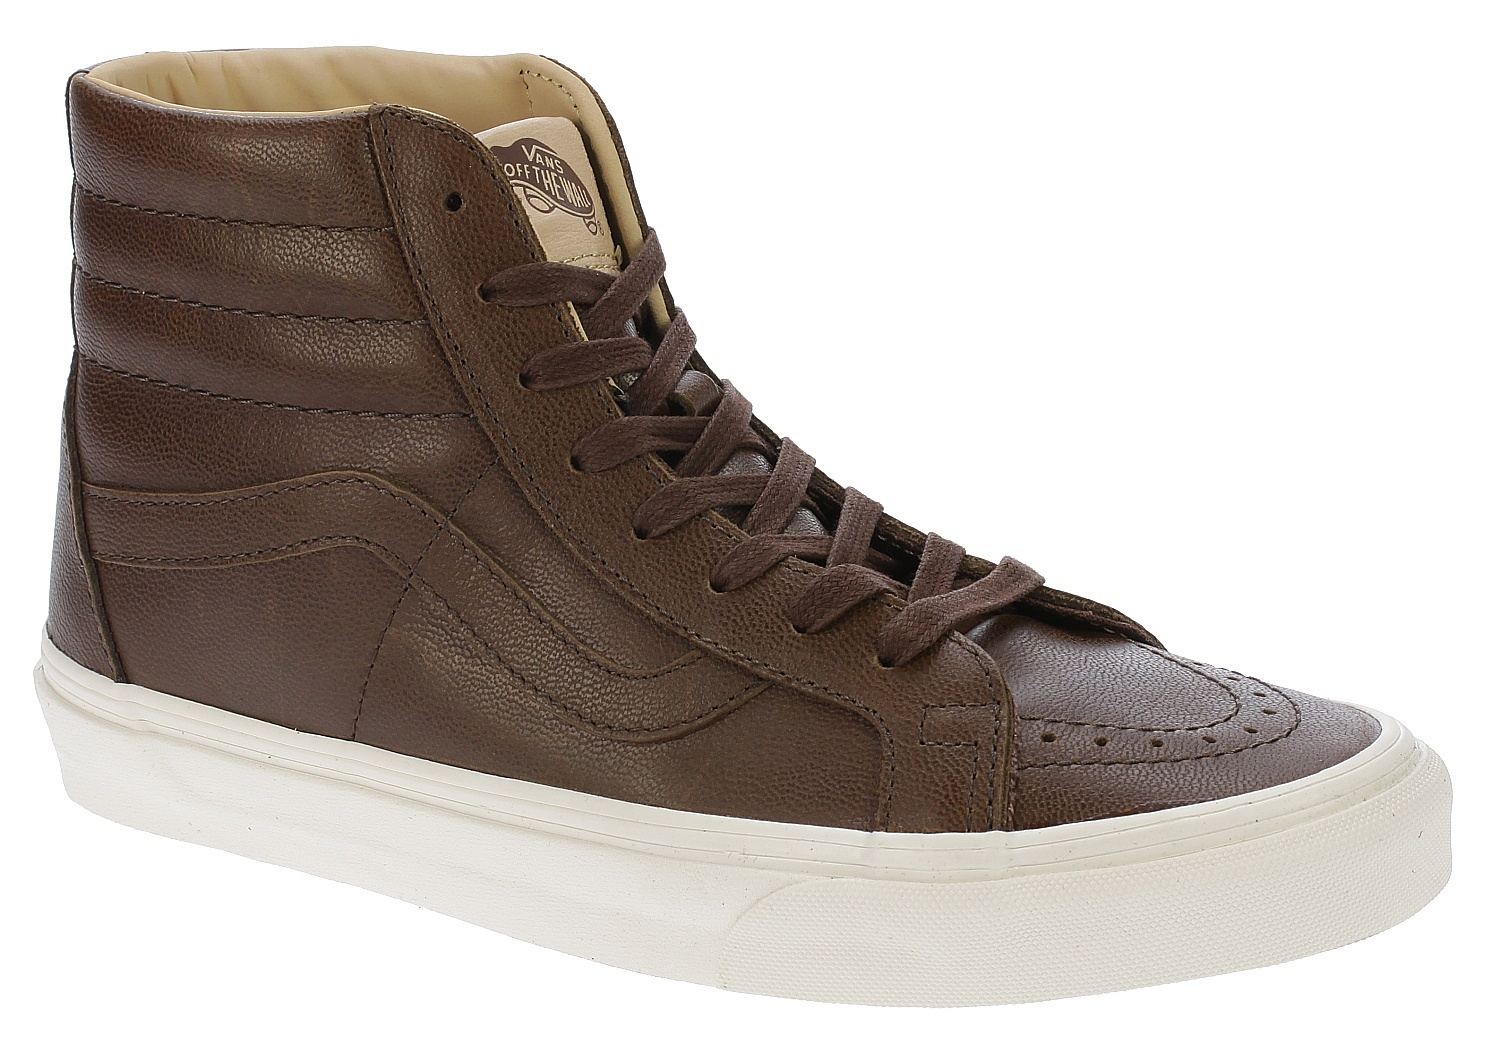 abe65ff1e19 shoes Vans Sk8-Hi Reissue - Lux Leather Shaved Chocolate Porcini -  Snowboard shop